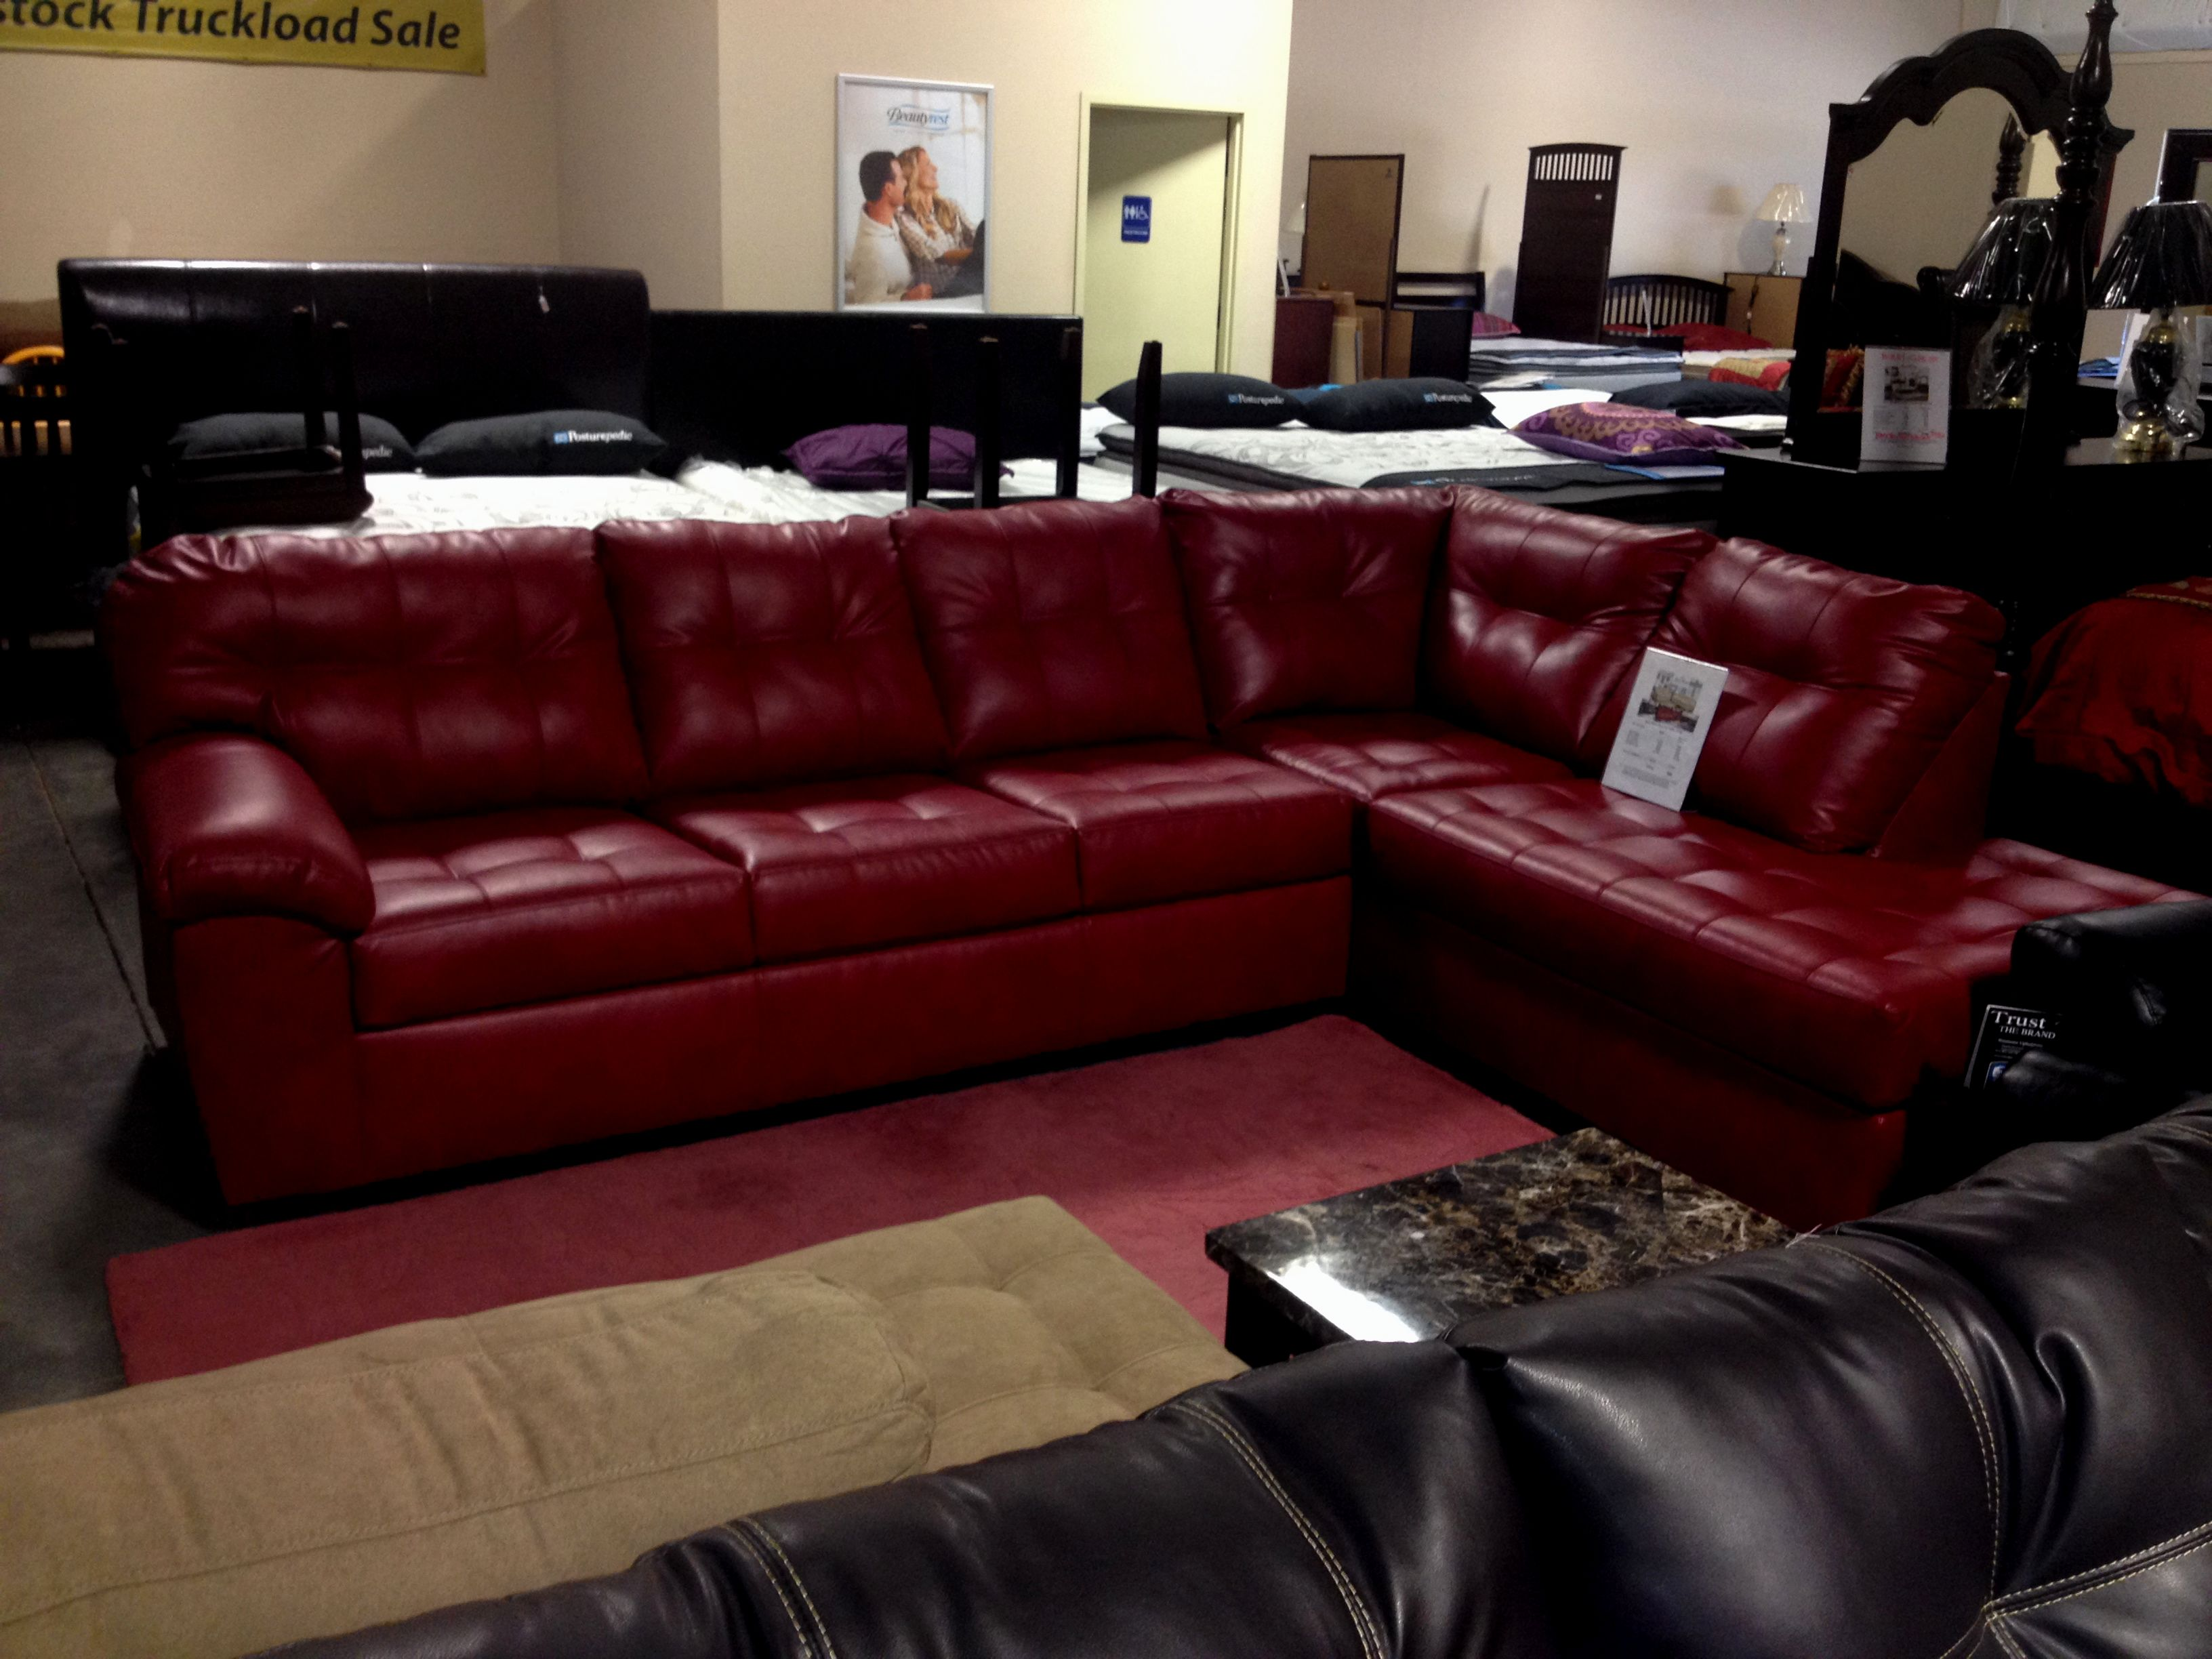 finest tan leather sofa concept-Incredible Tan Leather sofa Design